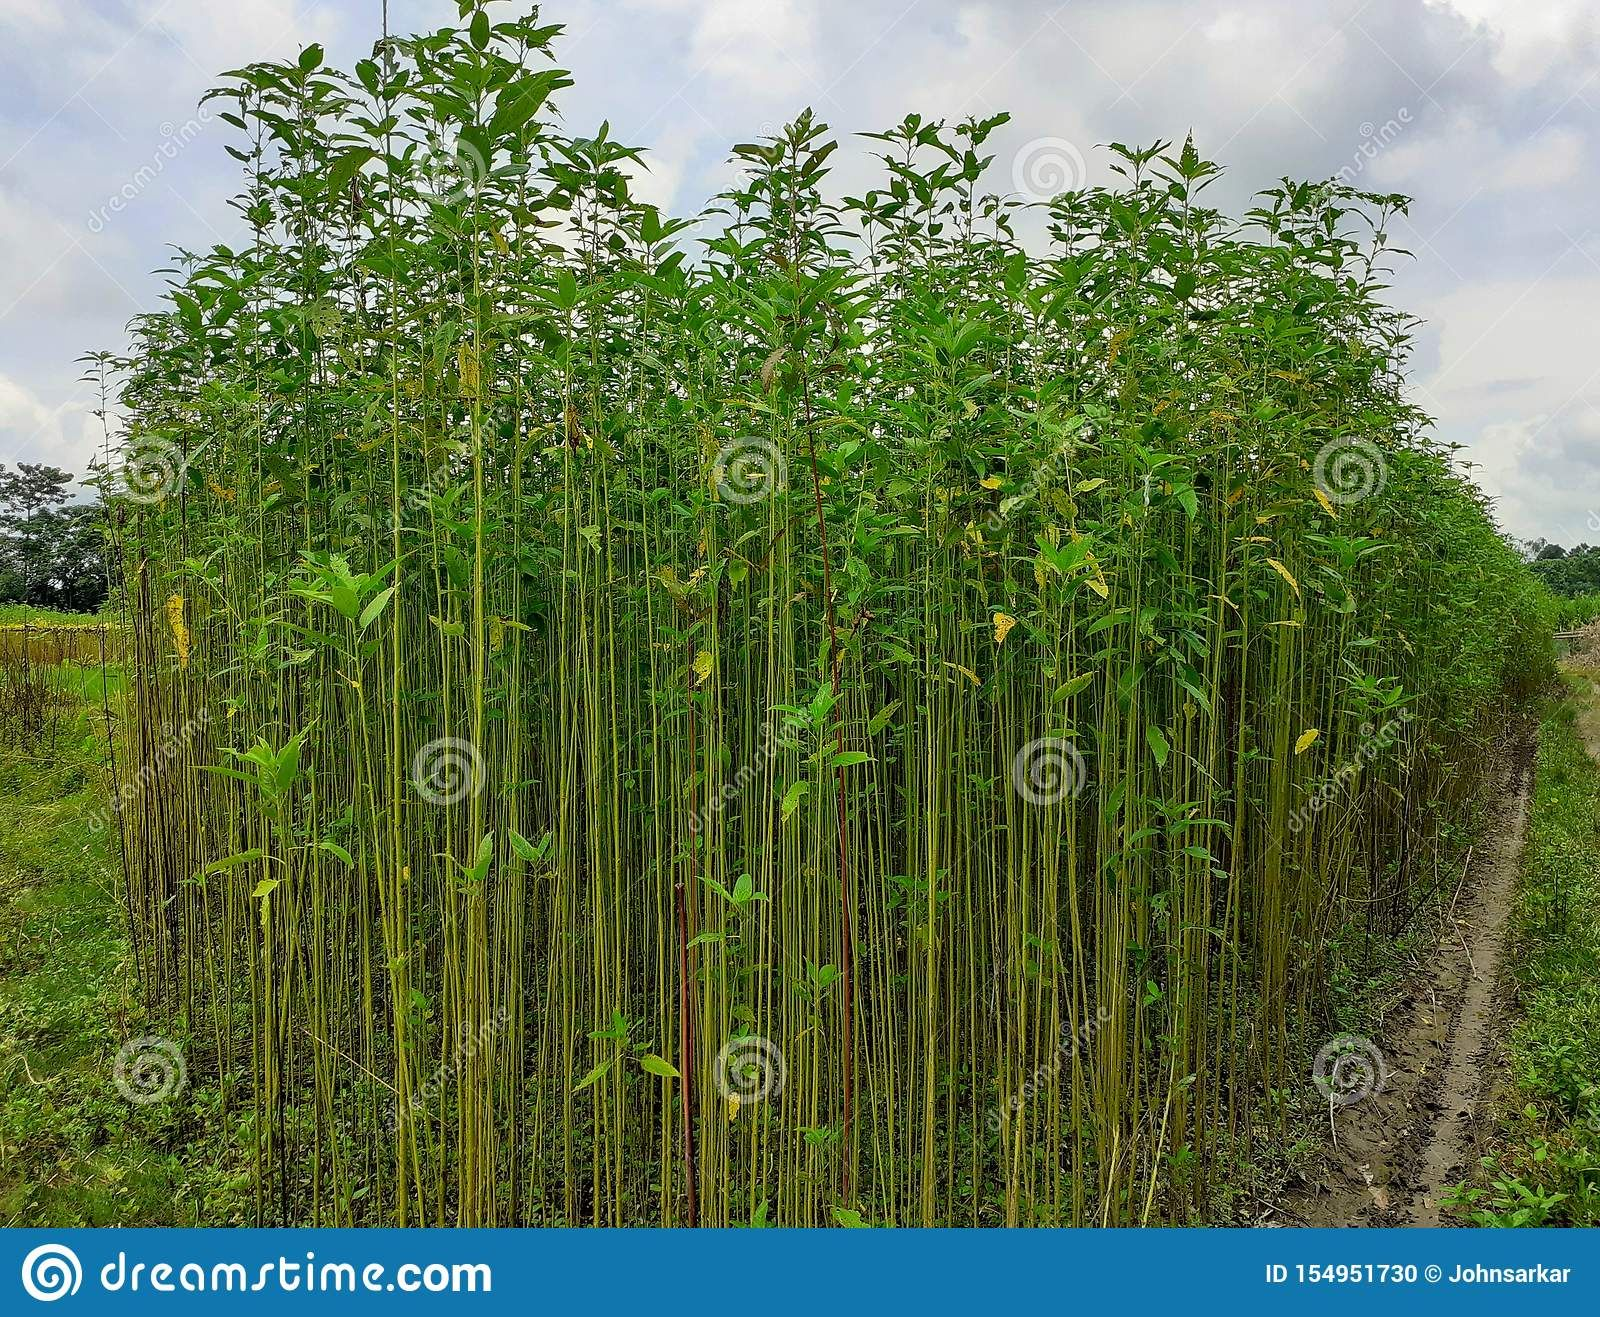 Pin by Ognimdo2002 Plant Edition on Saluyot Jute Plant